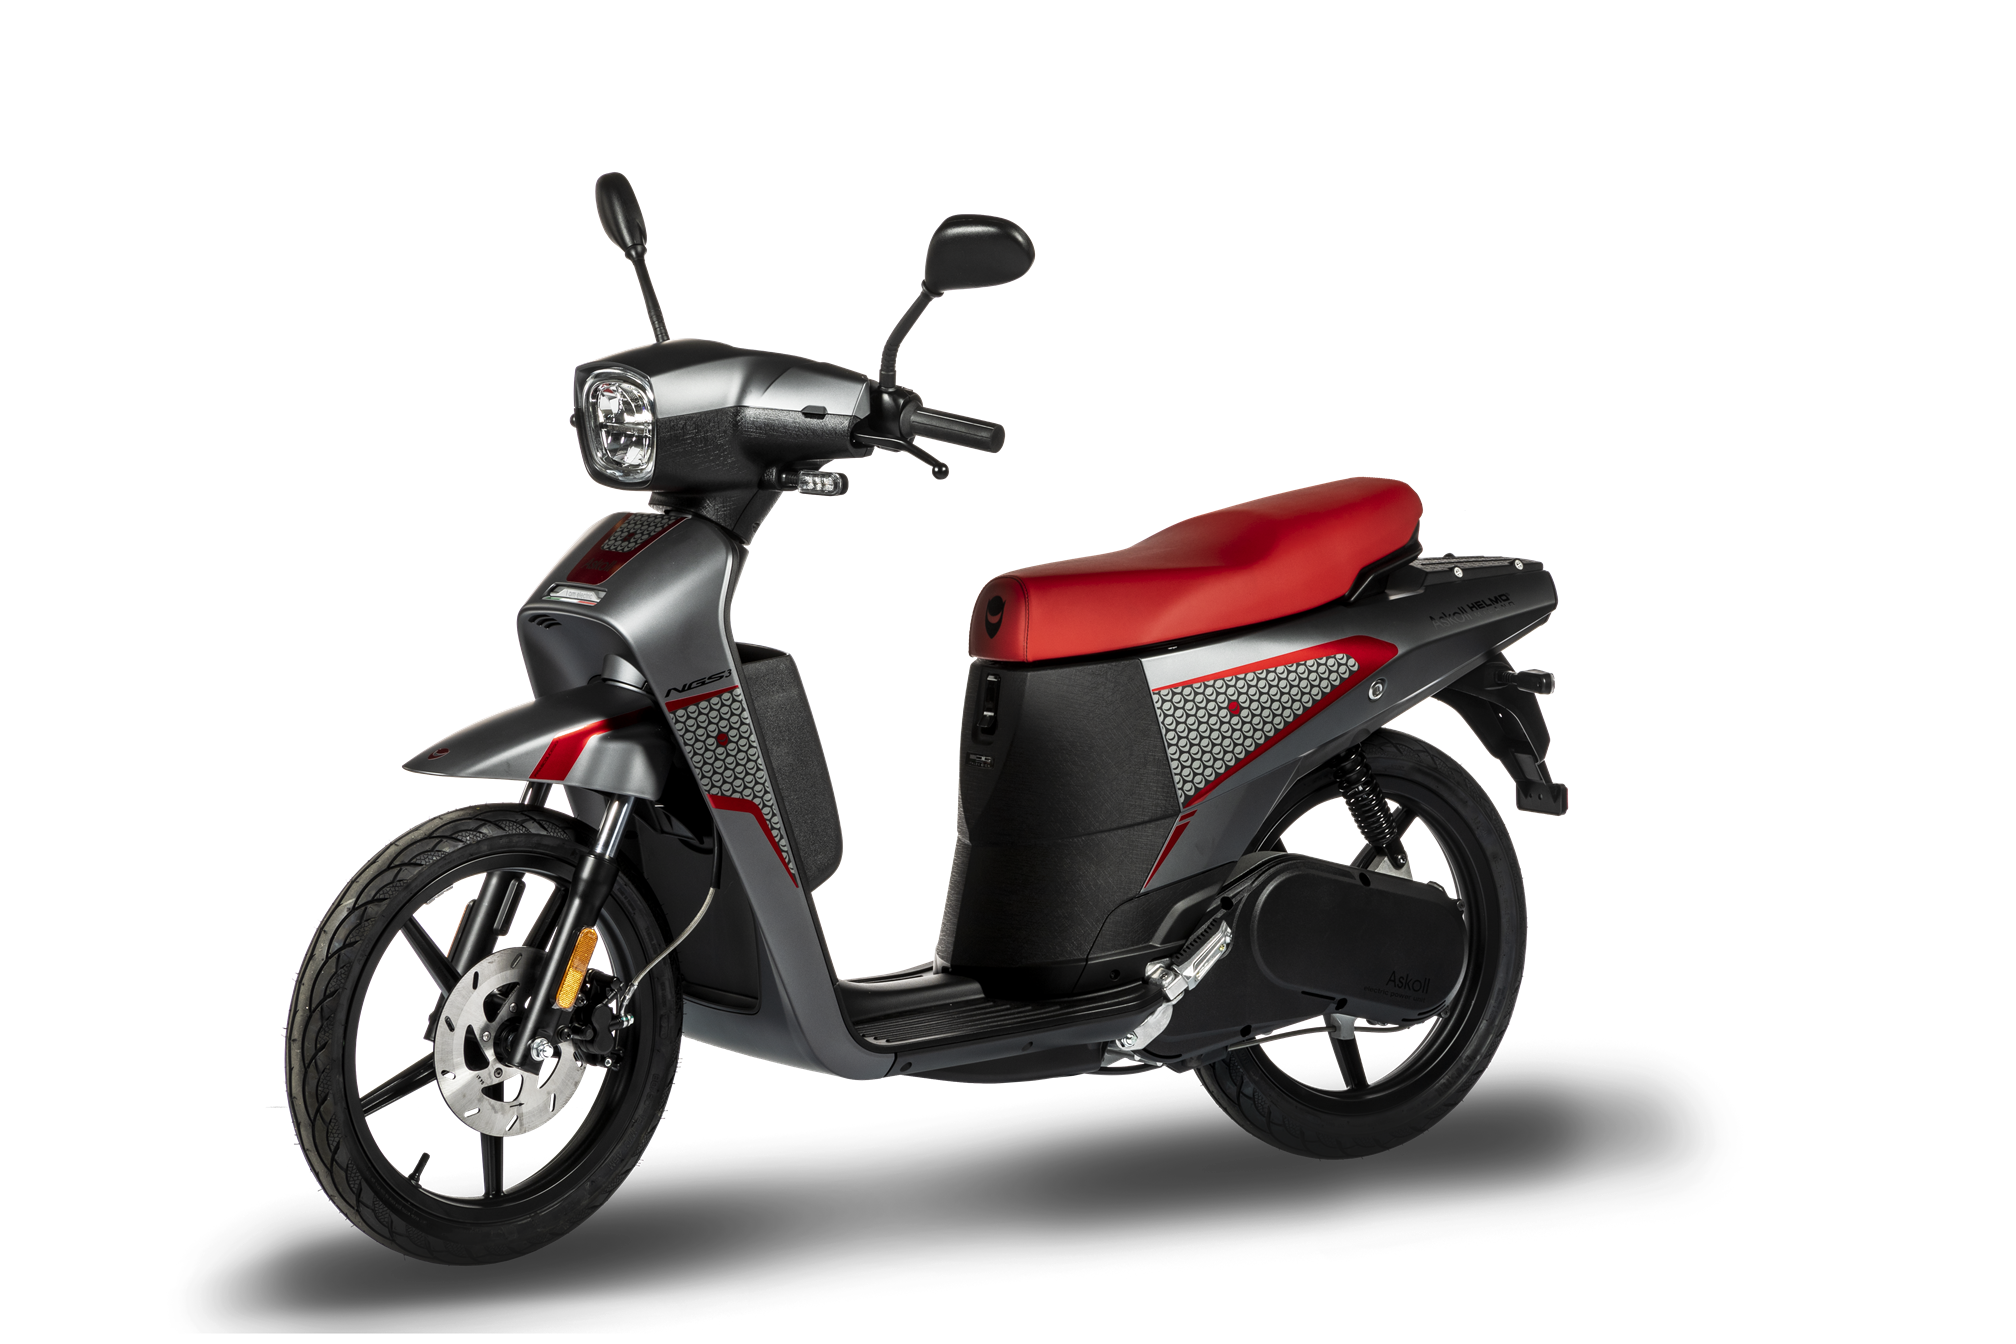 Askool Scooter Ngs2